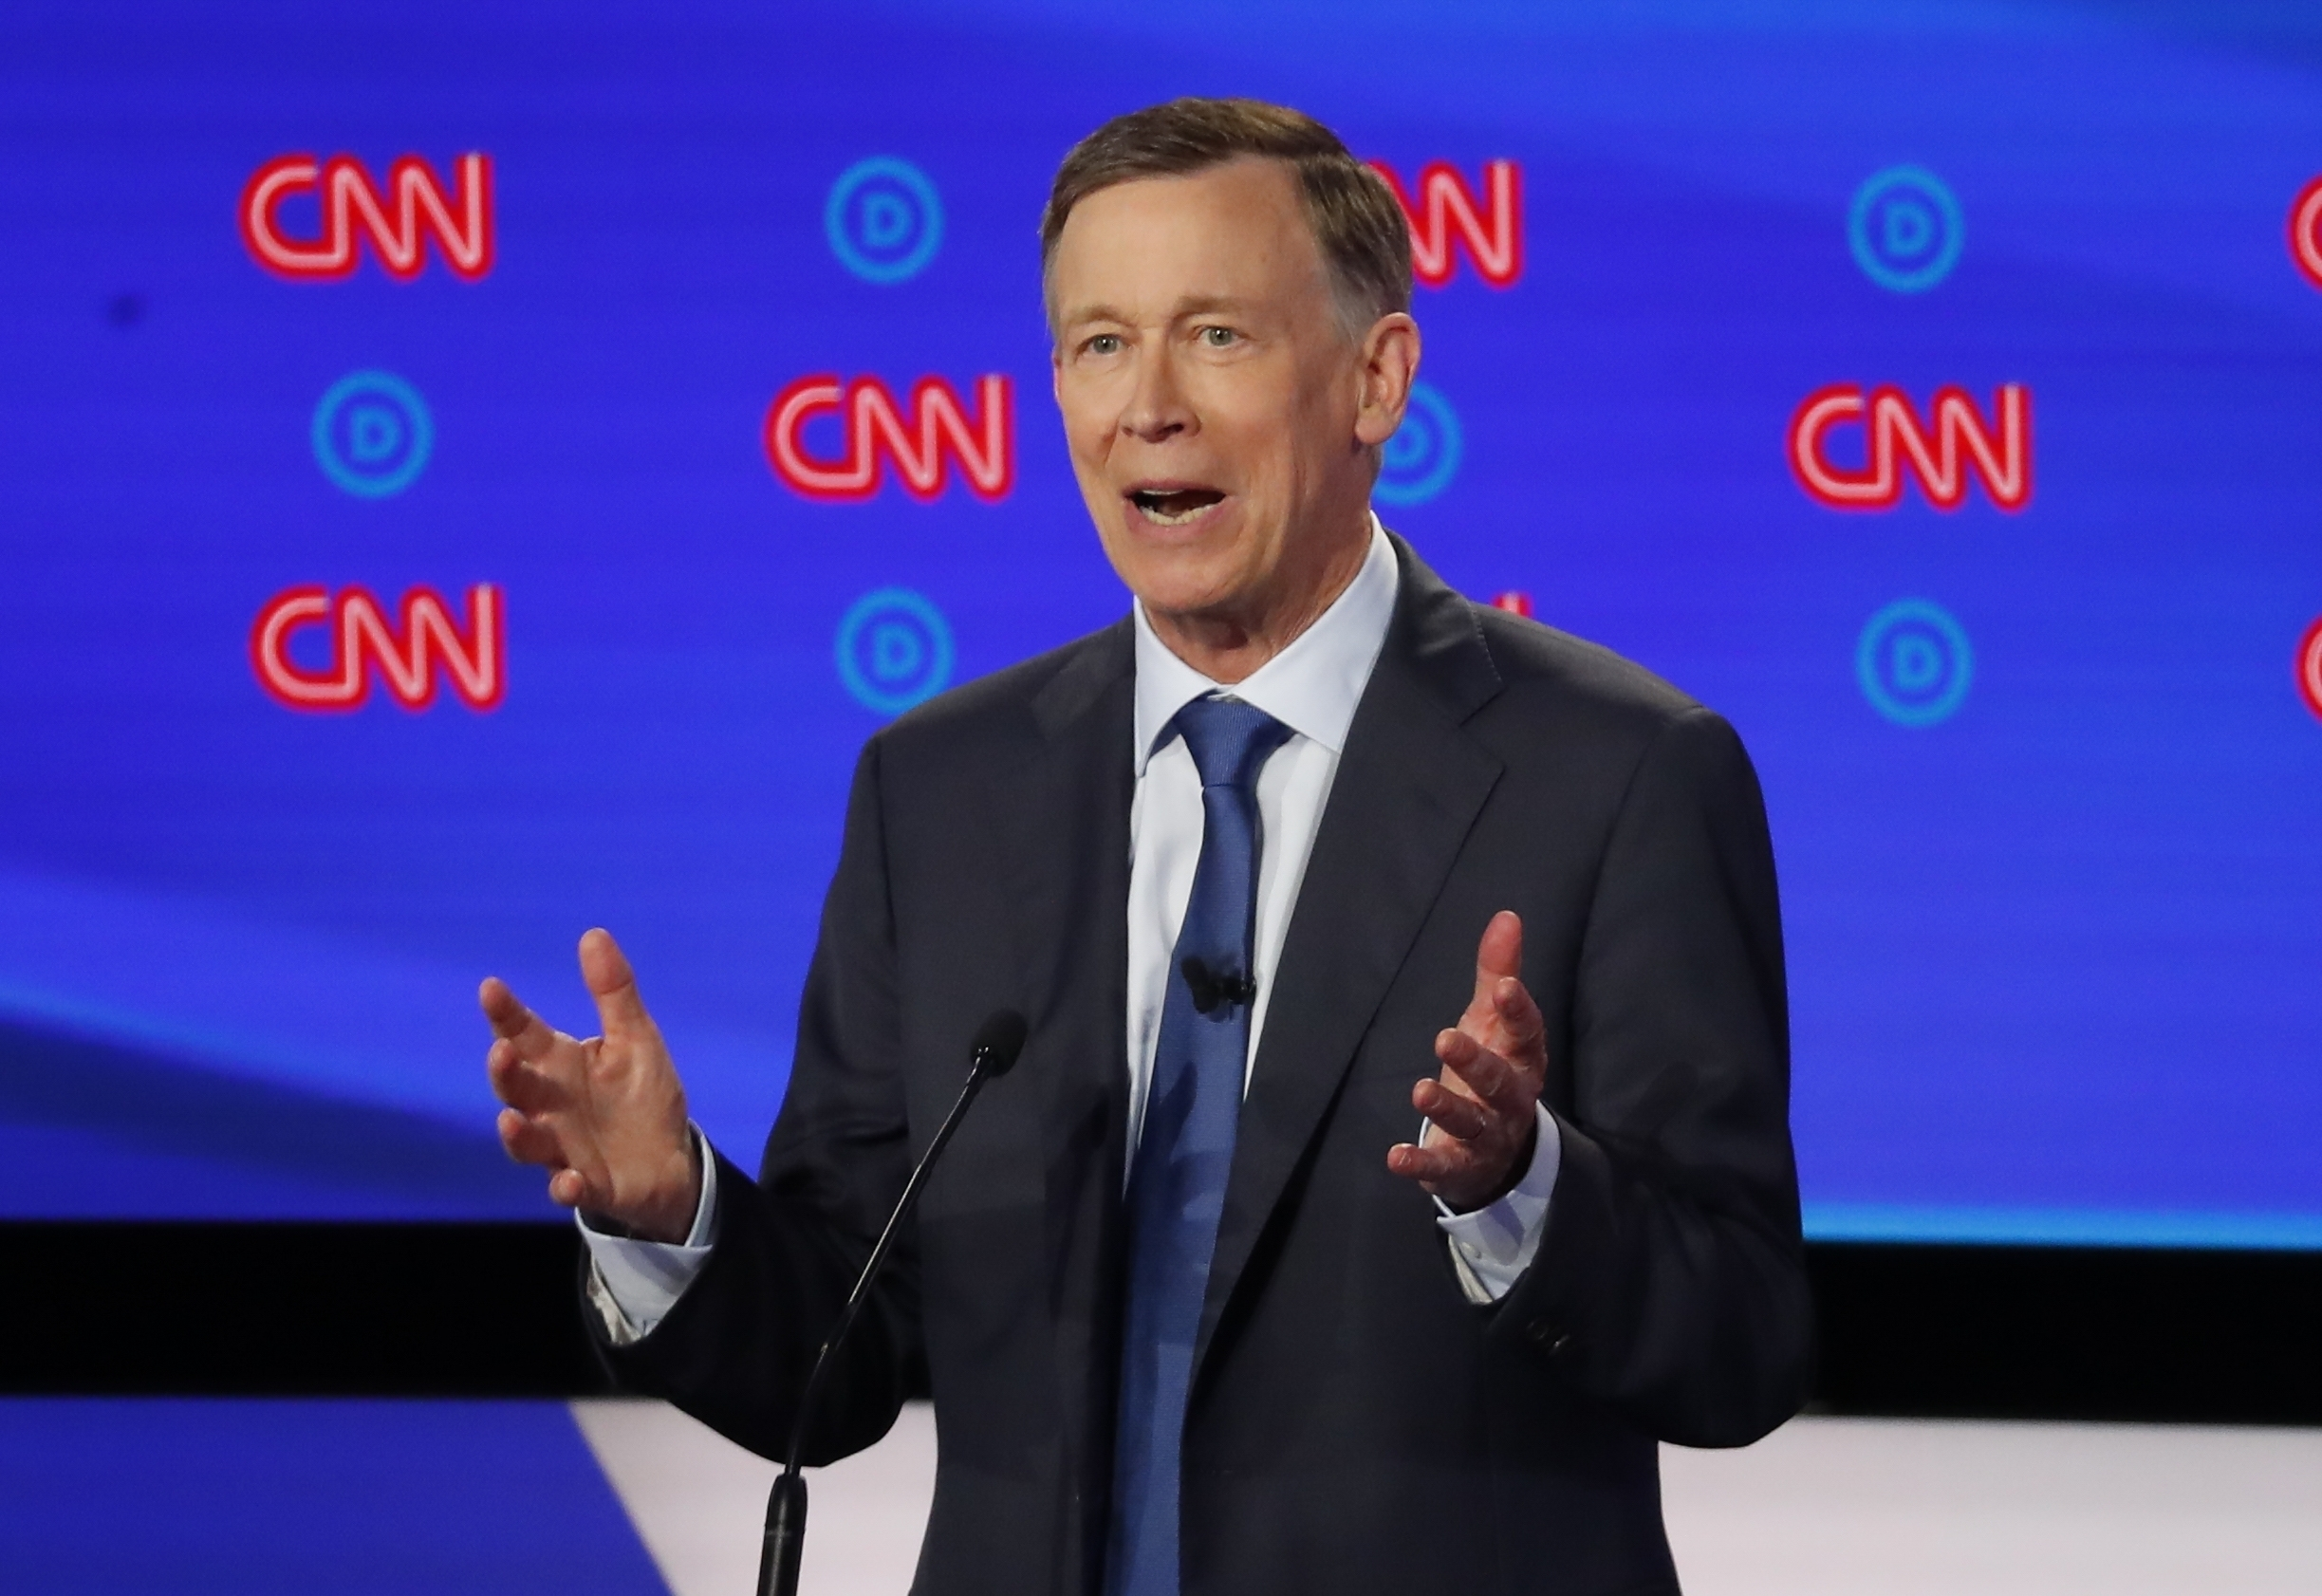 John Hickenlooper expected to drop out of presidential race: Reports